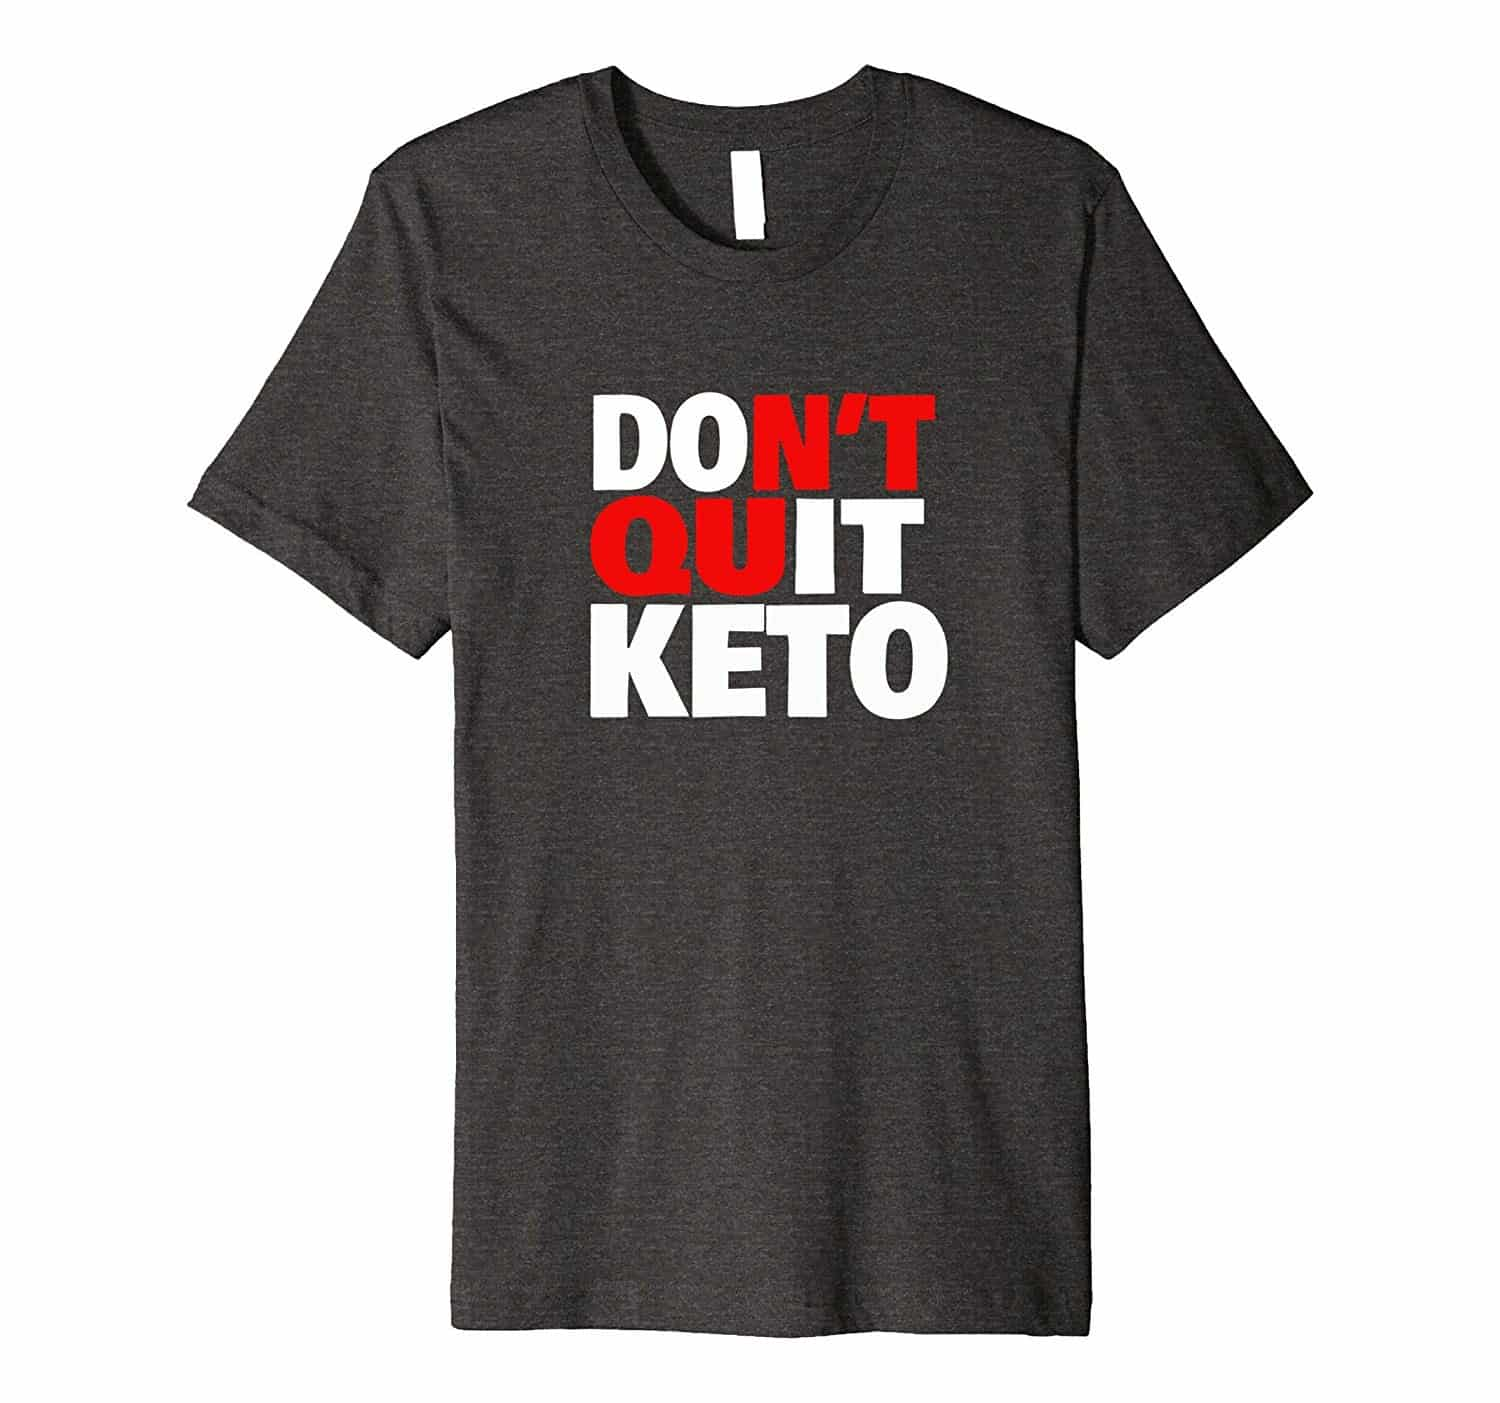 DO IT, Don't Quit Keto Tshirt